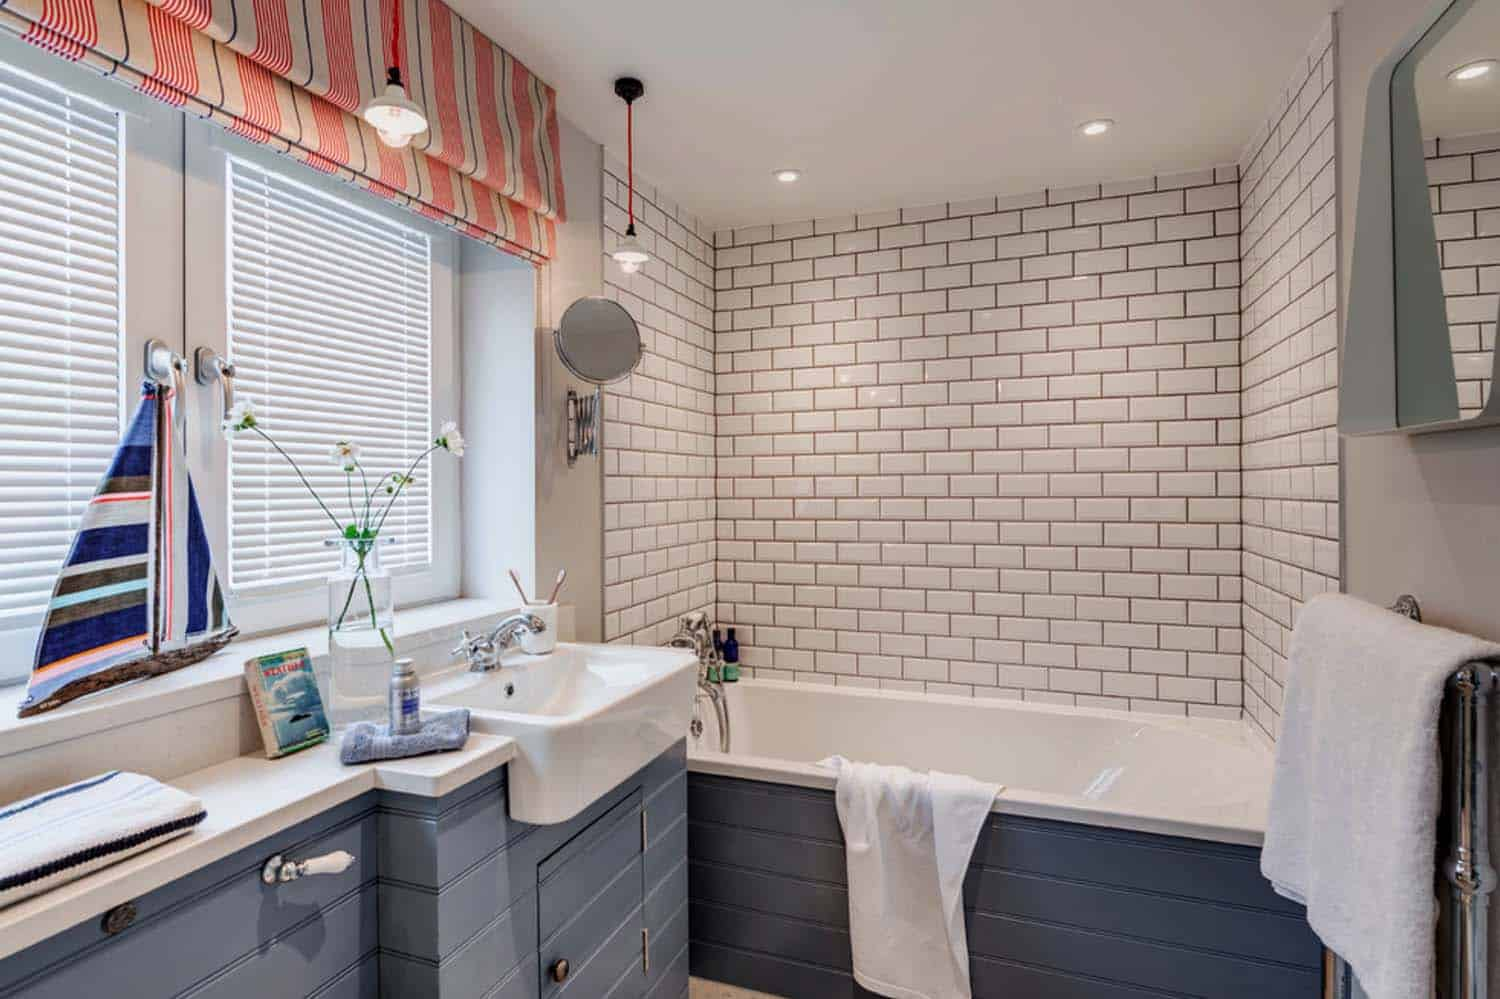 seaside-bungalow-renovation-woodford-architecture-12-1-kindesign